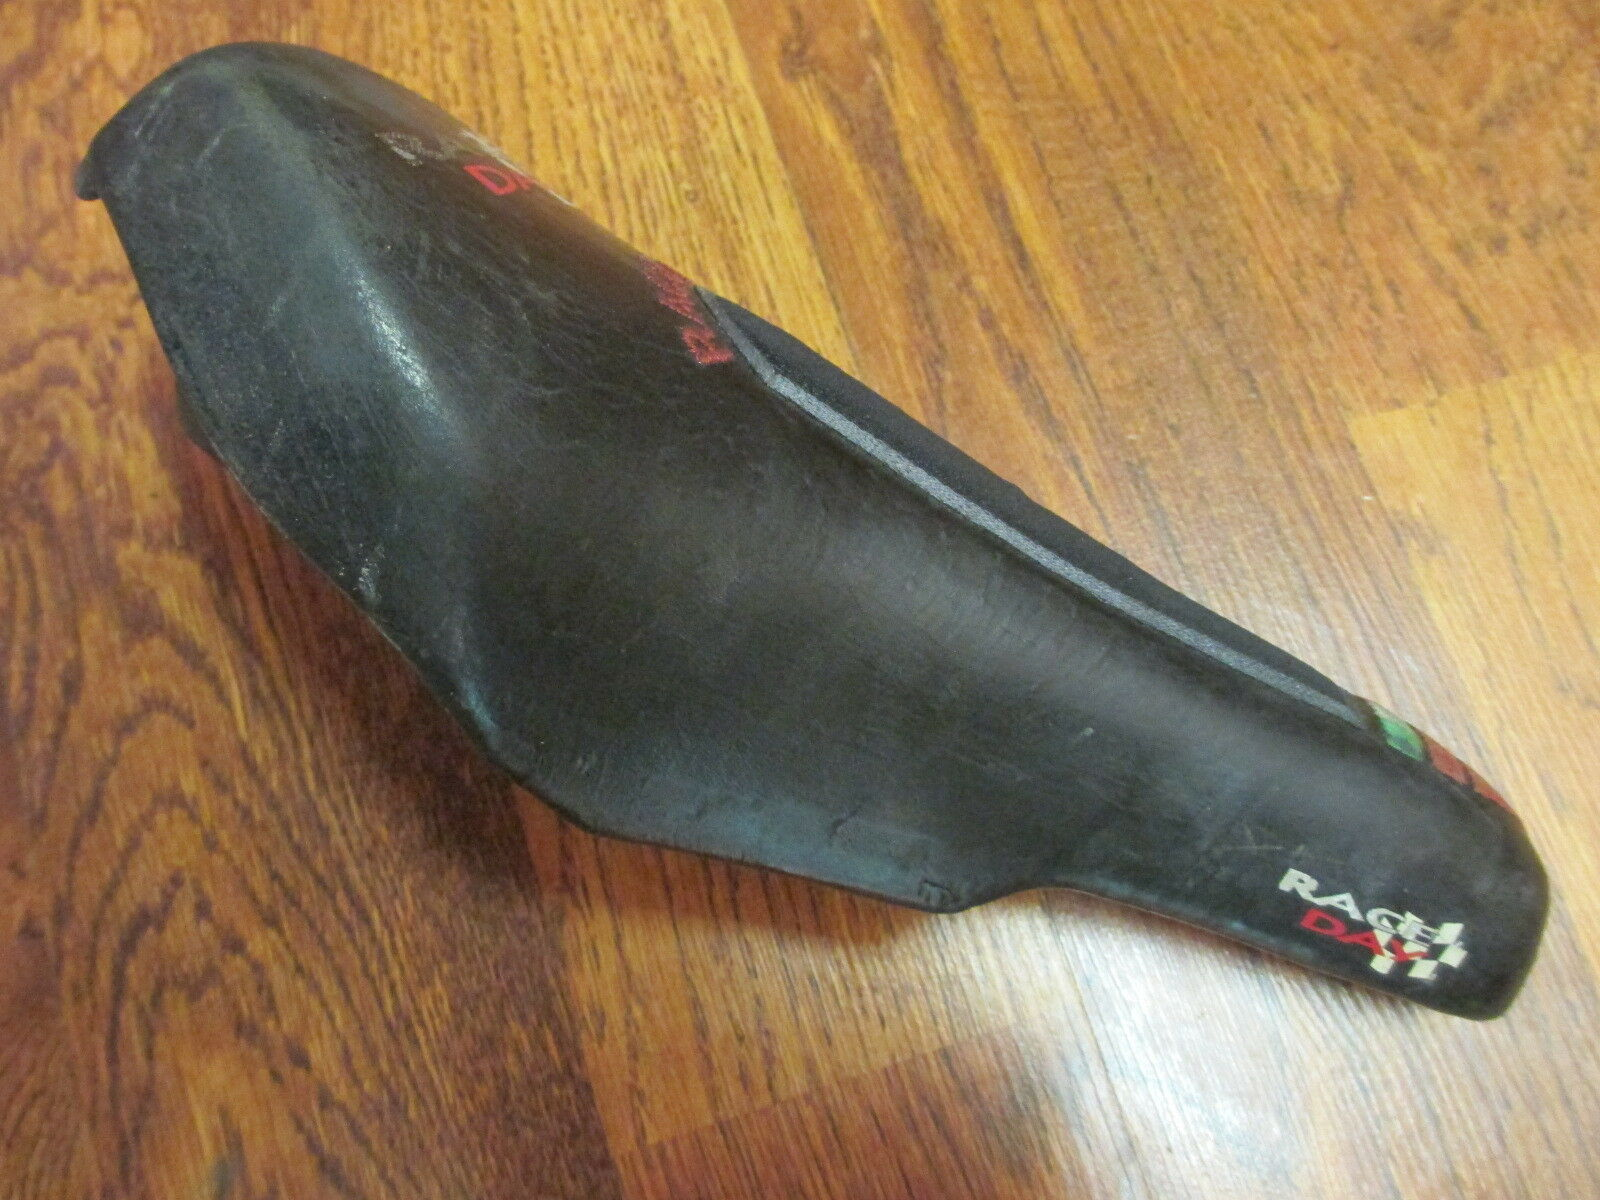 VINTAGE BONTRAGER SELLE SAN MARCO RACE DAY MOUNTAIN BIKE RACING SADDLE